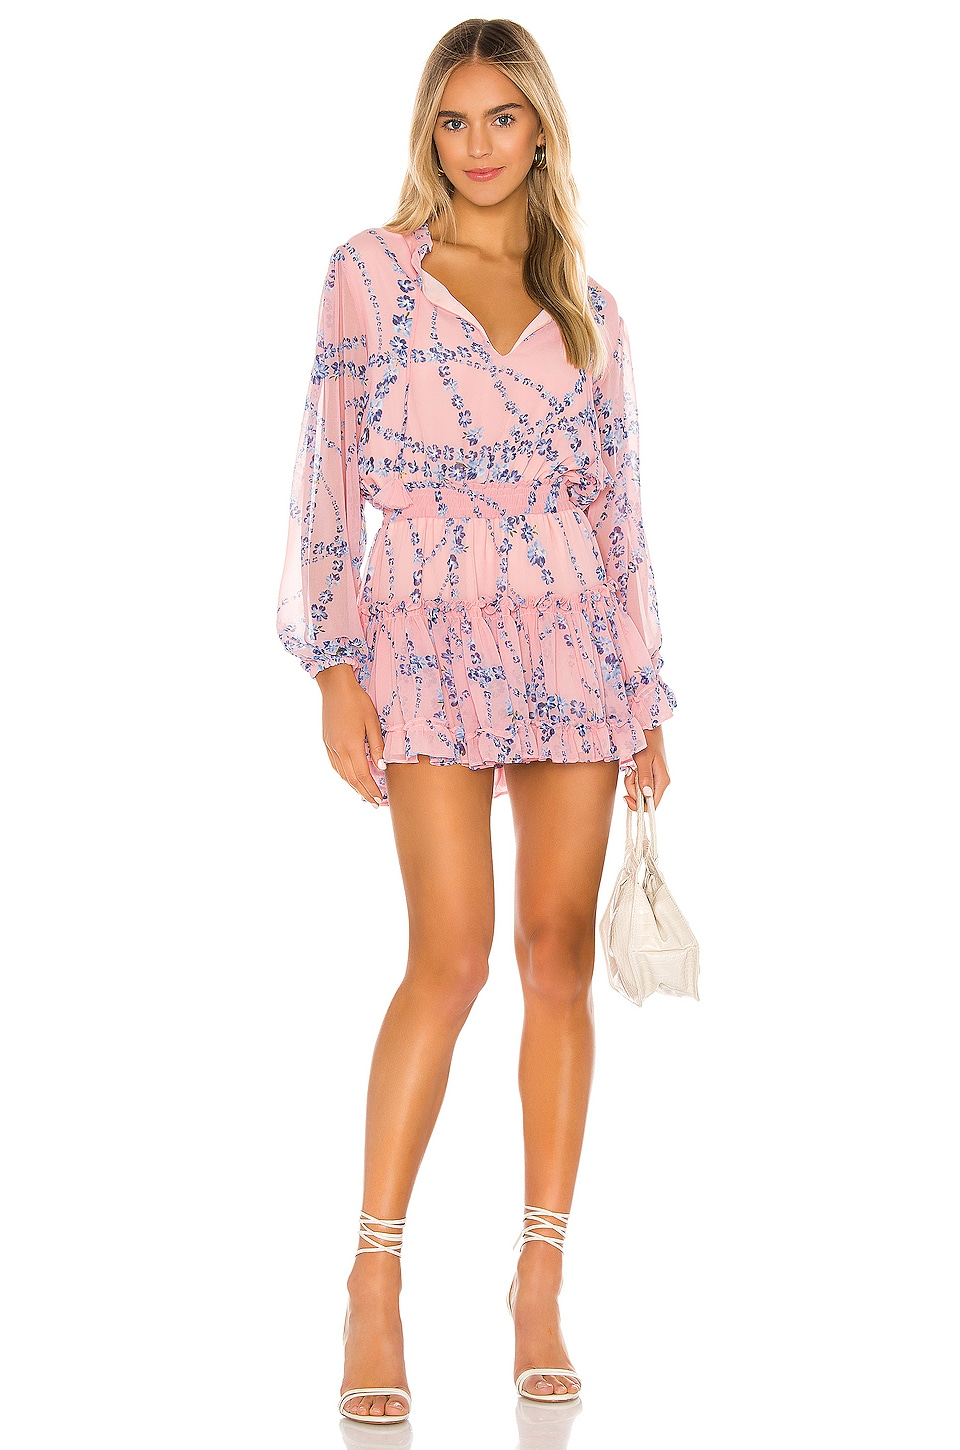 MISA Los Angeles Lorena Dress in Intertwined Pink Floral